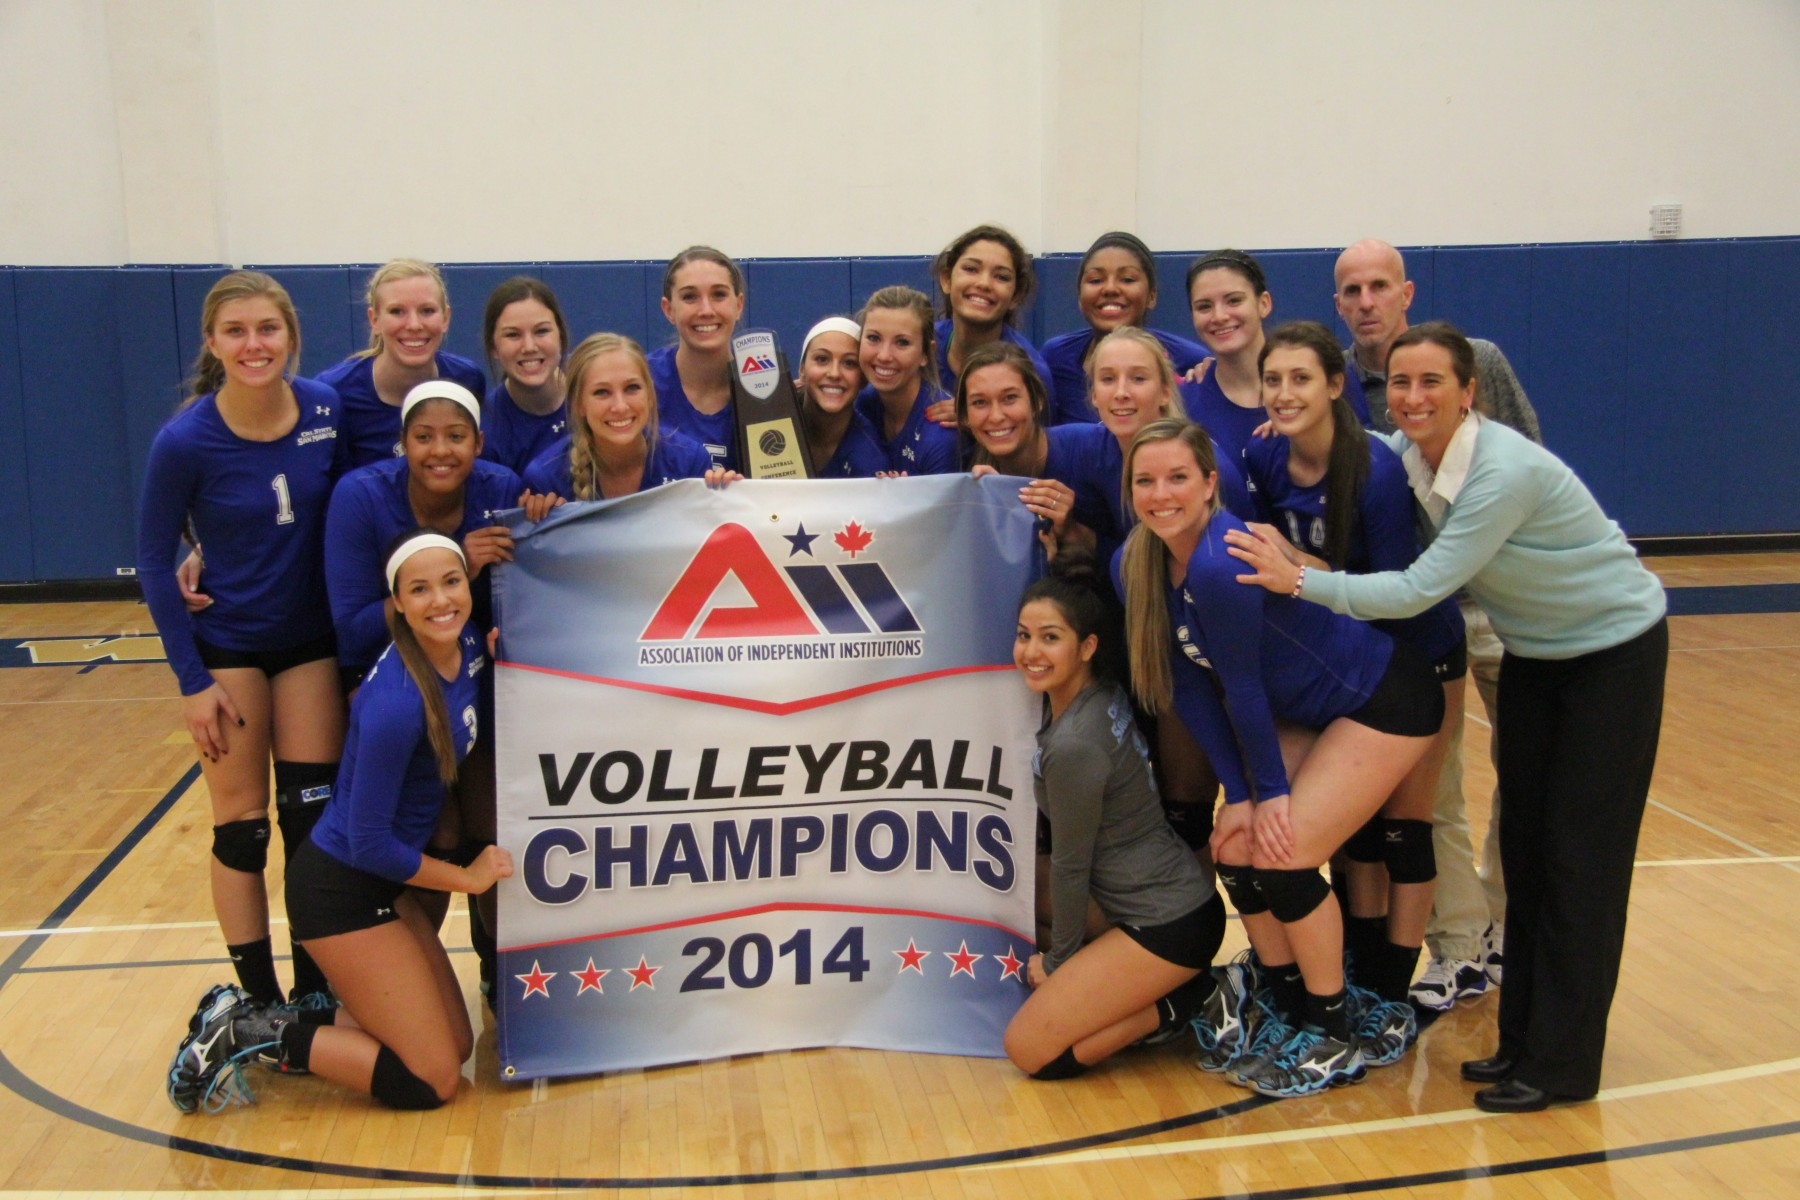 Women's Voleyball Team wins national championship